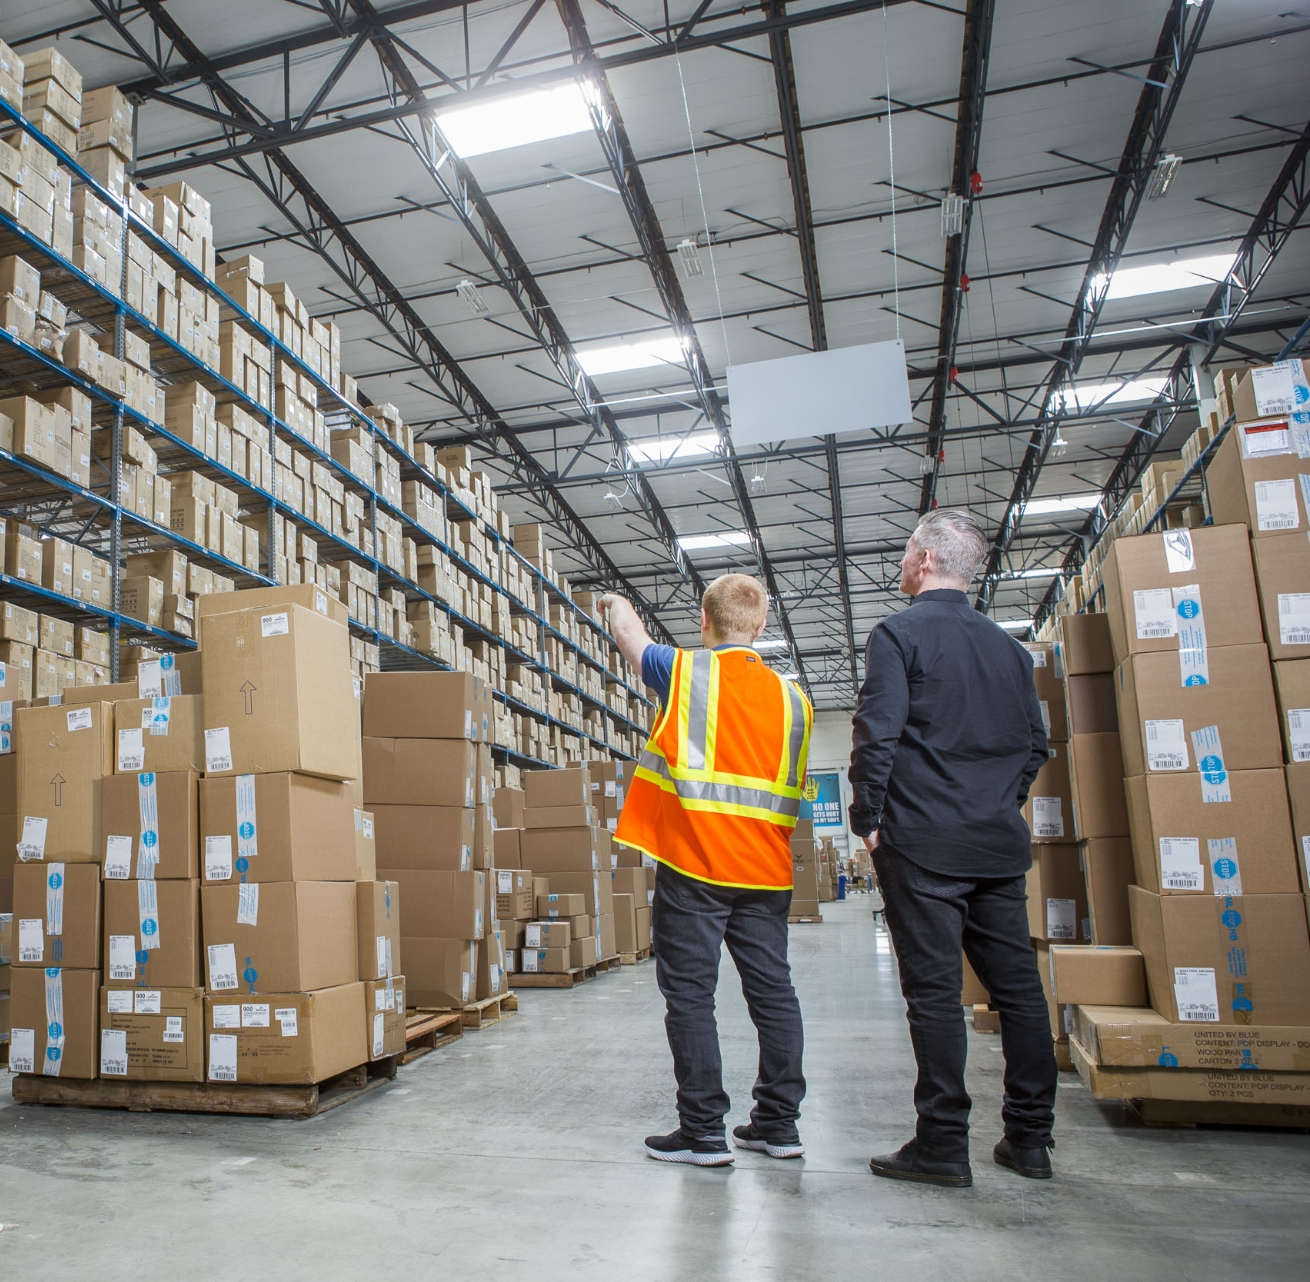 Man in hi-vis vest pointing to boxes while man in black shirt looks in warehouse